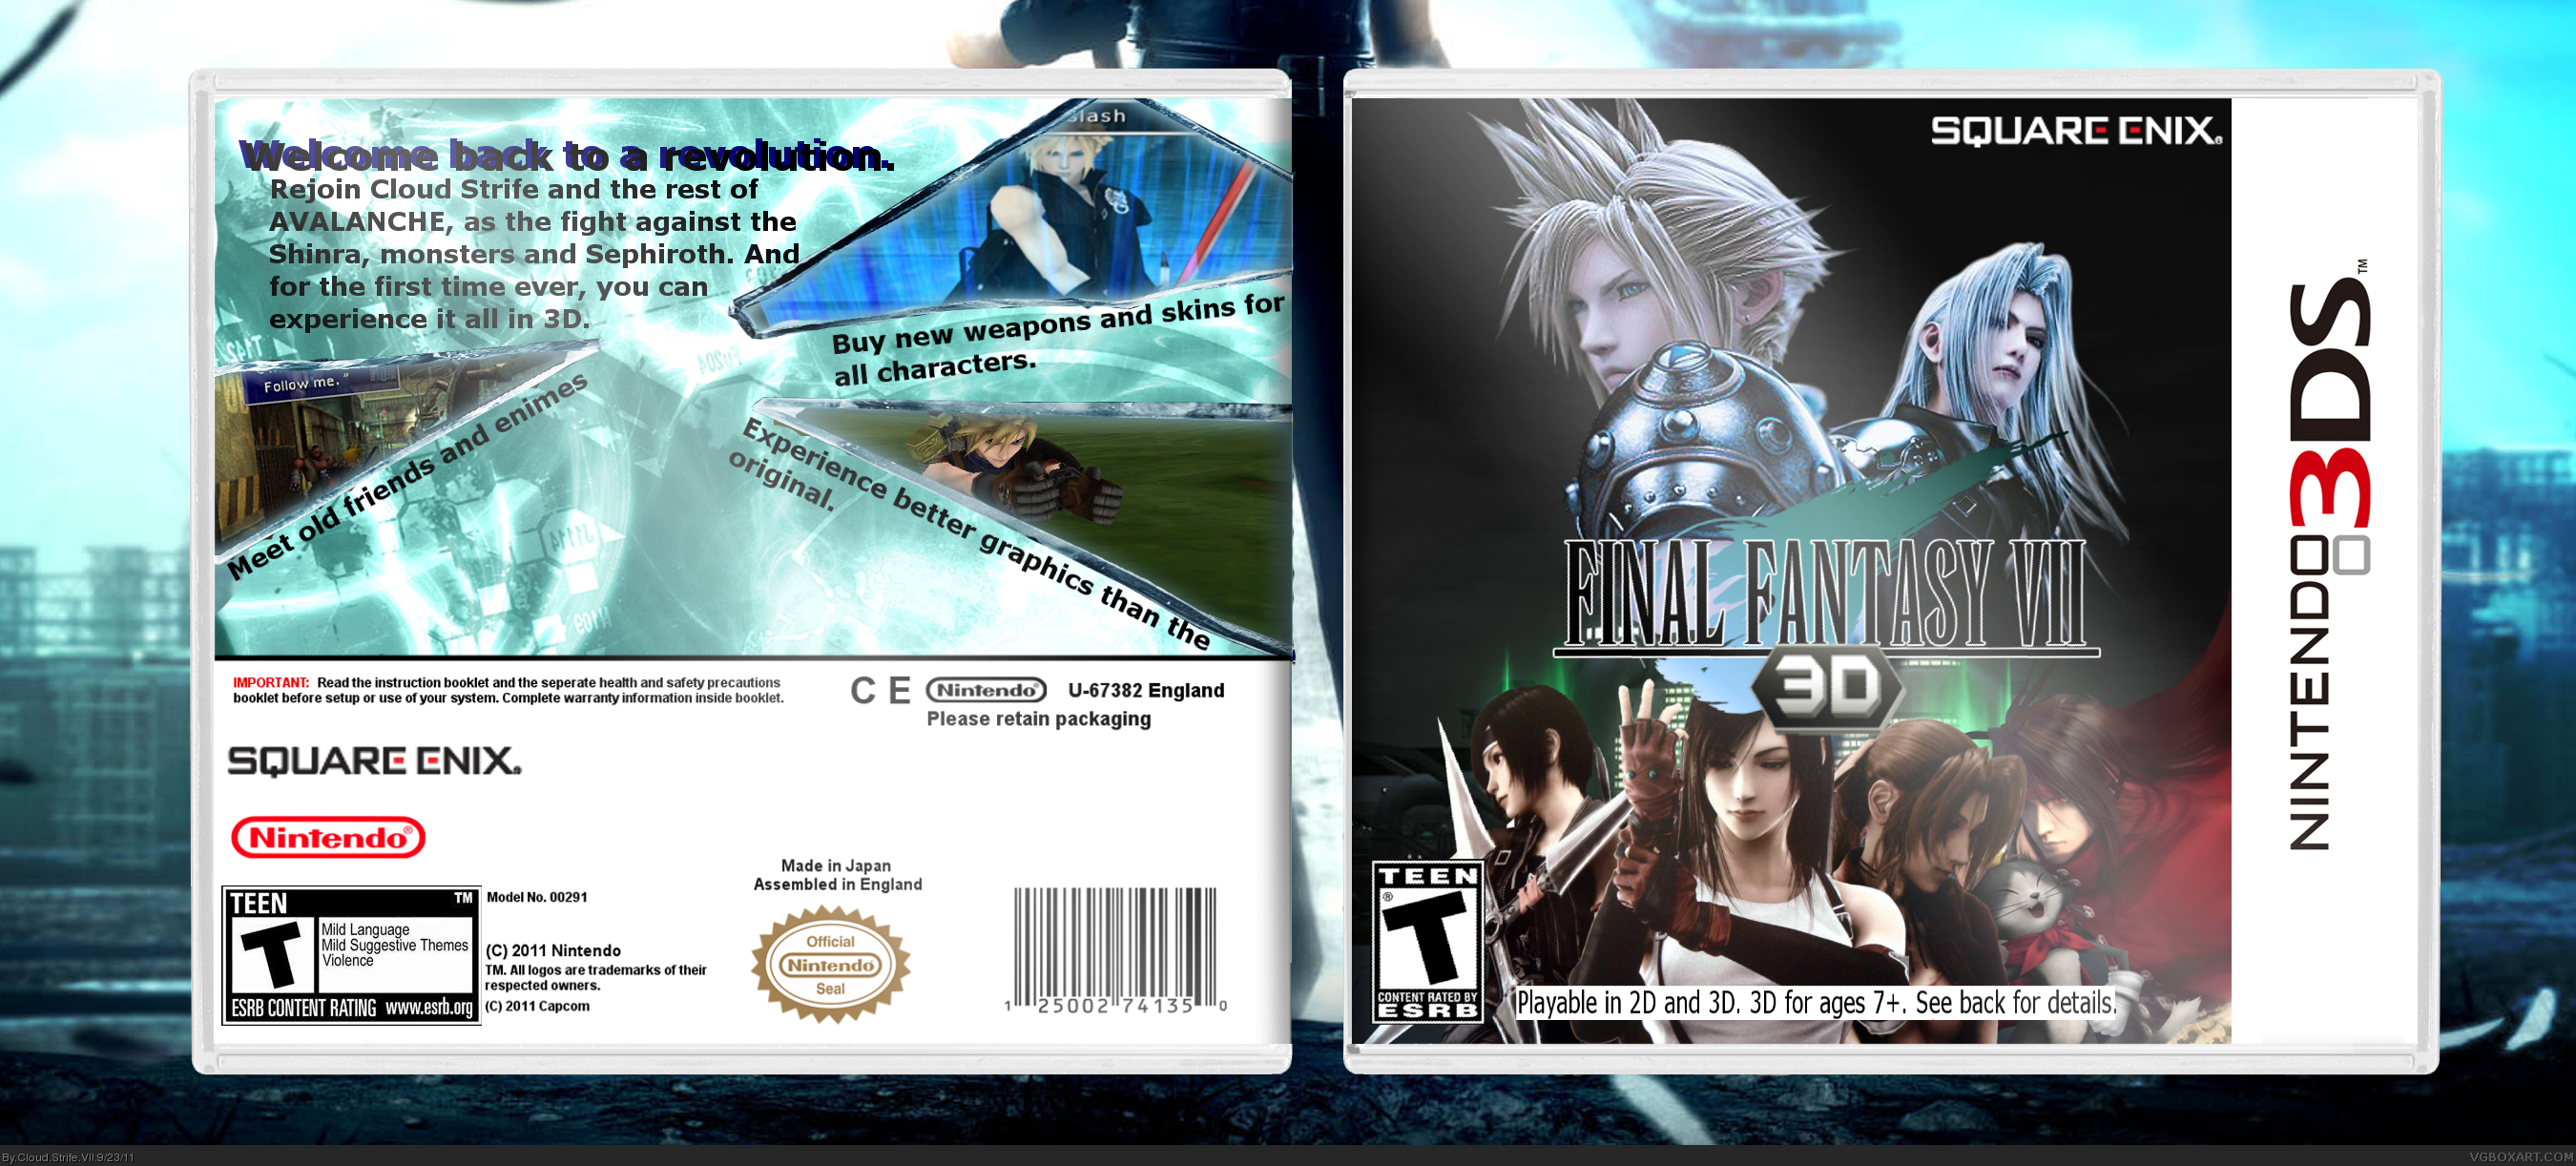 how to play final fantasy 7 on 3ds